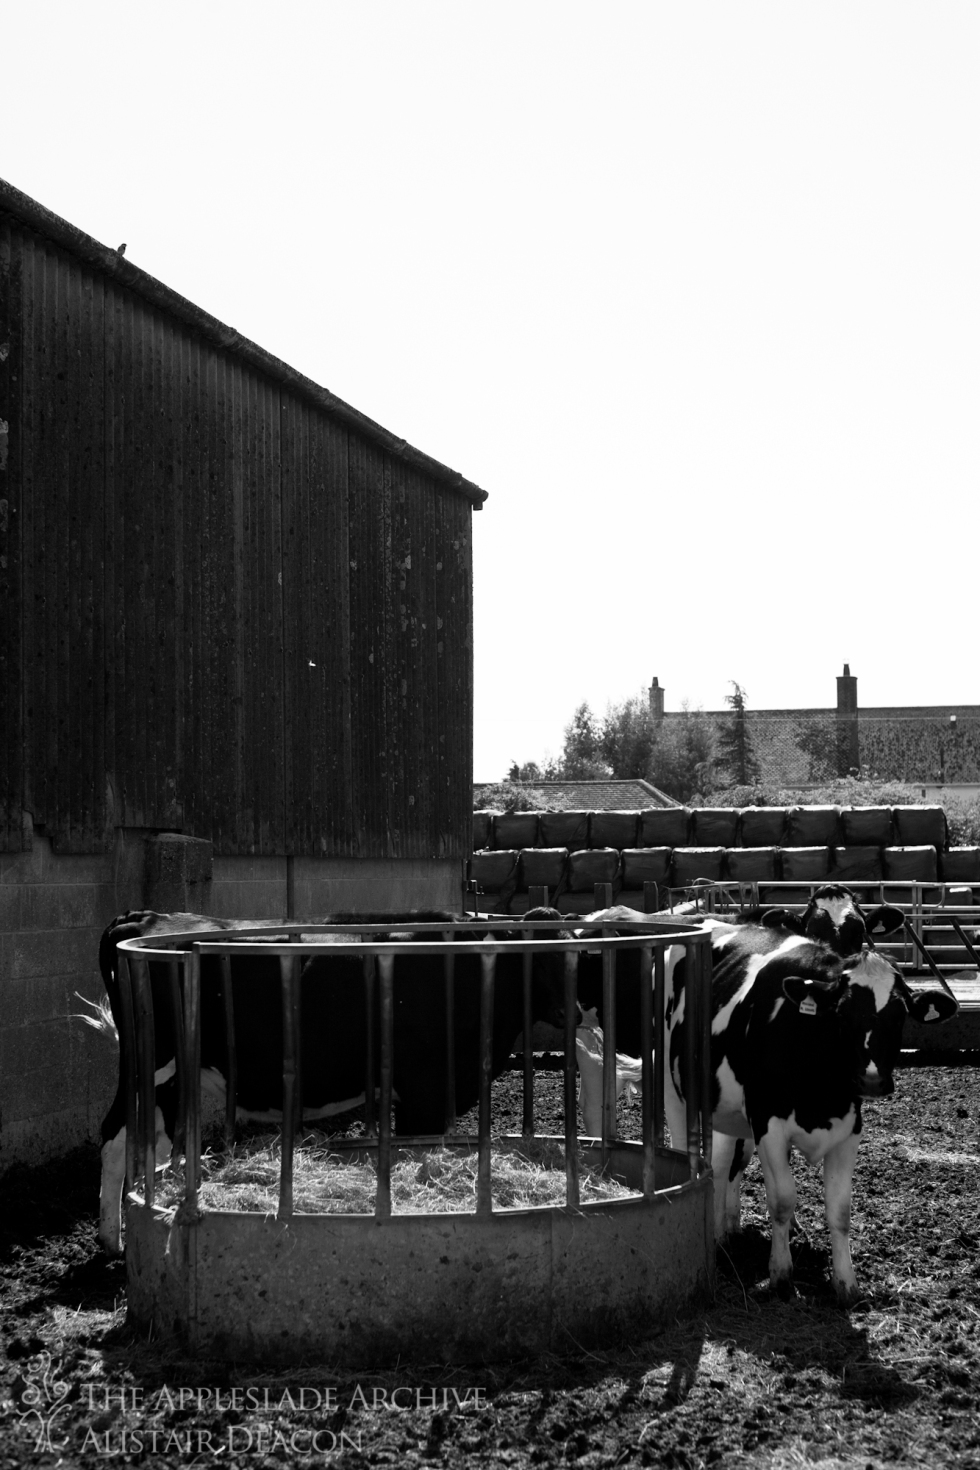 Heifers waiting to be fed, Ayles Farm, Avon, Dorset, 20th Aug 2013